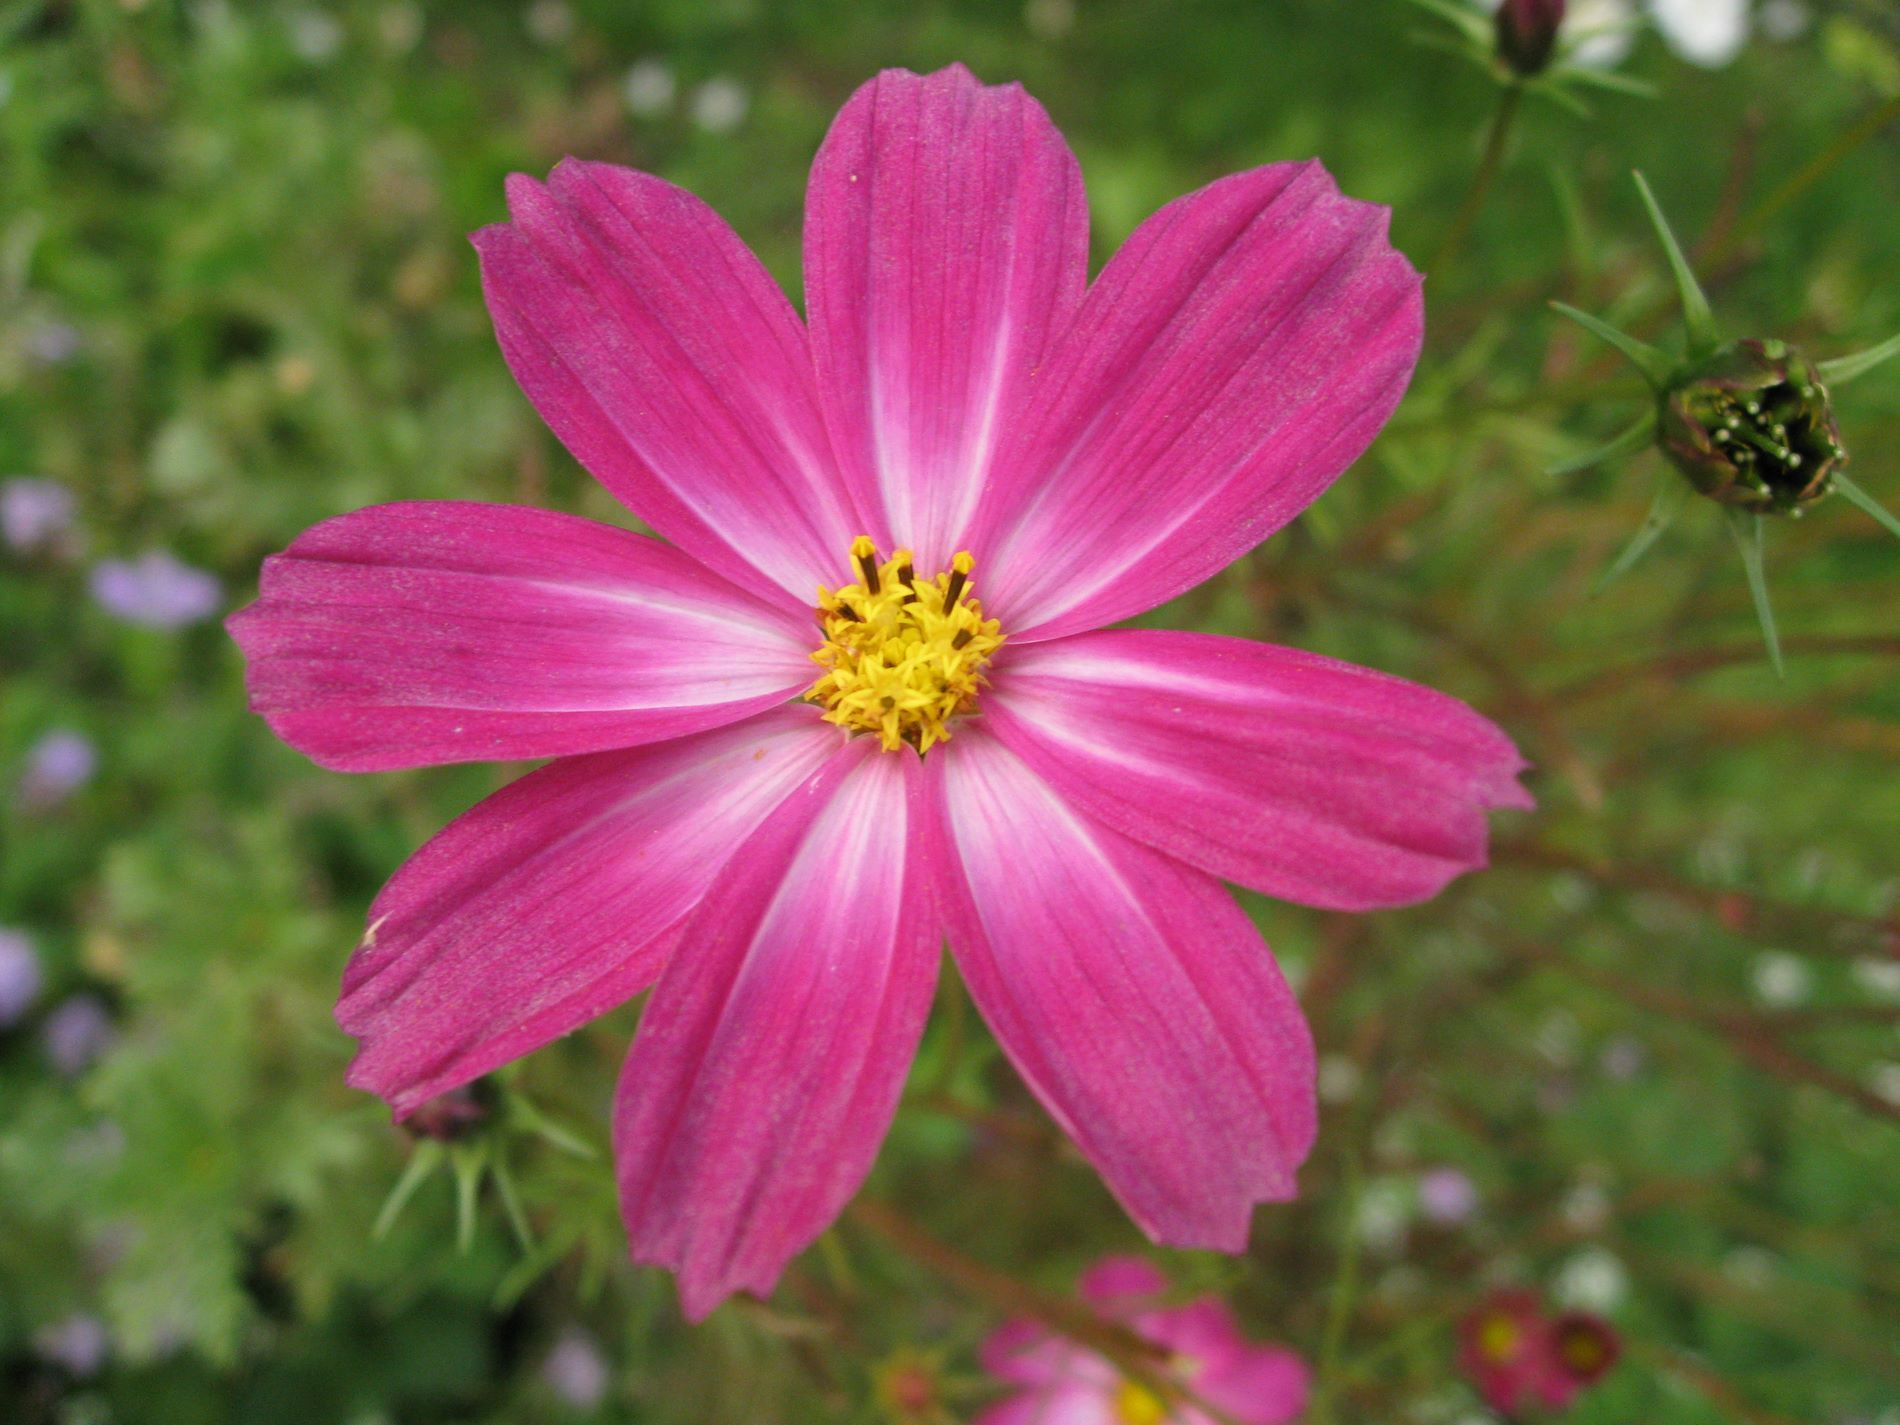 Aster Flower Meaning Symbolism Flower Meanings, Pictures